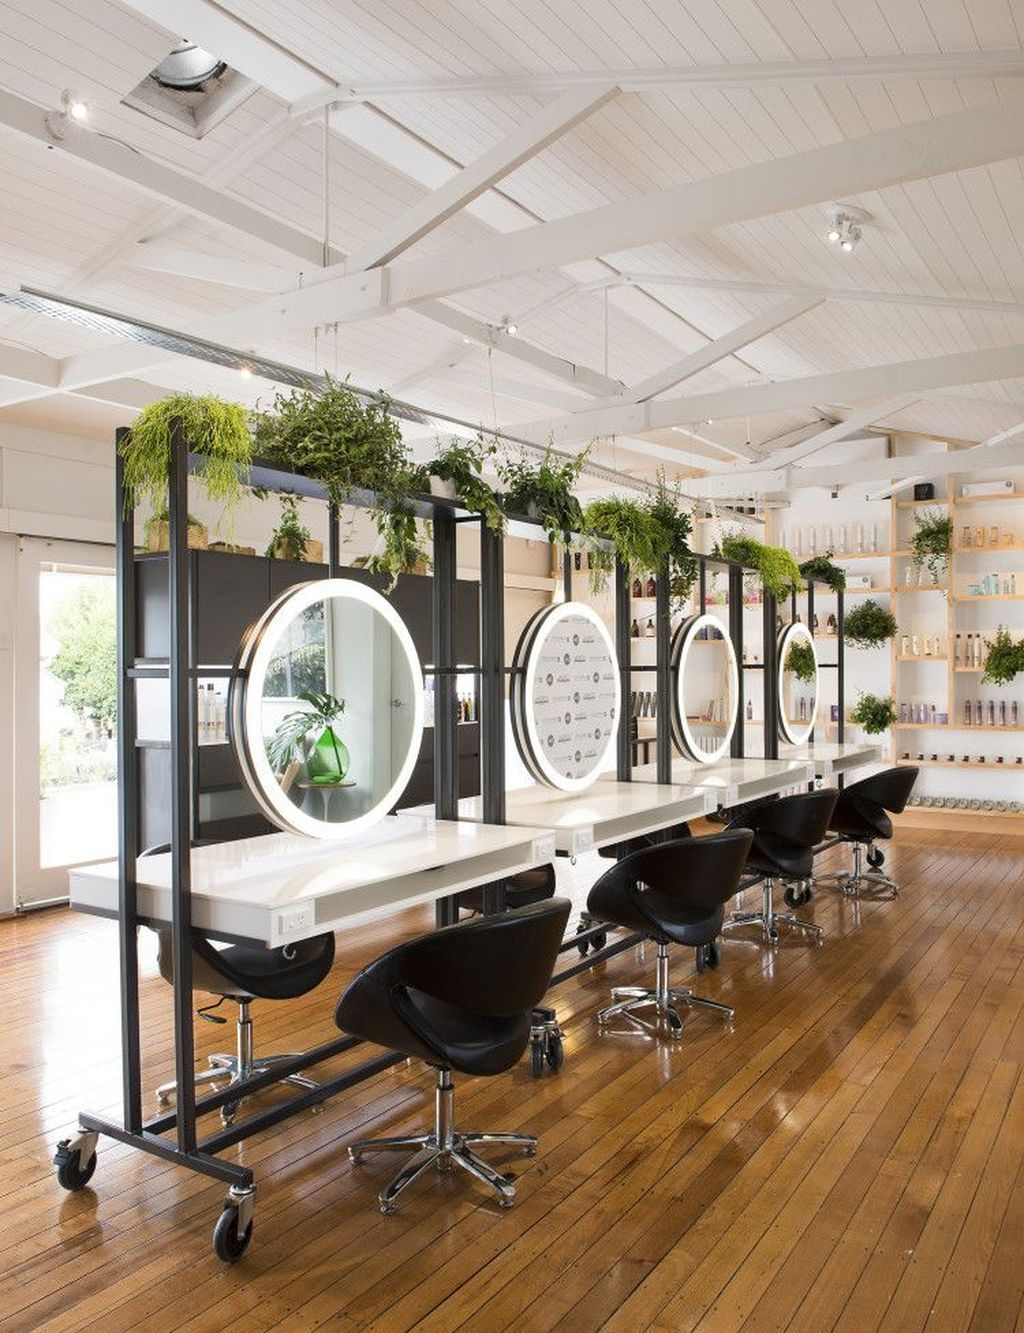 Salon Inspiration 50 Hair Salon Ideas 50 Decor Beauty Salon Design Beauty